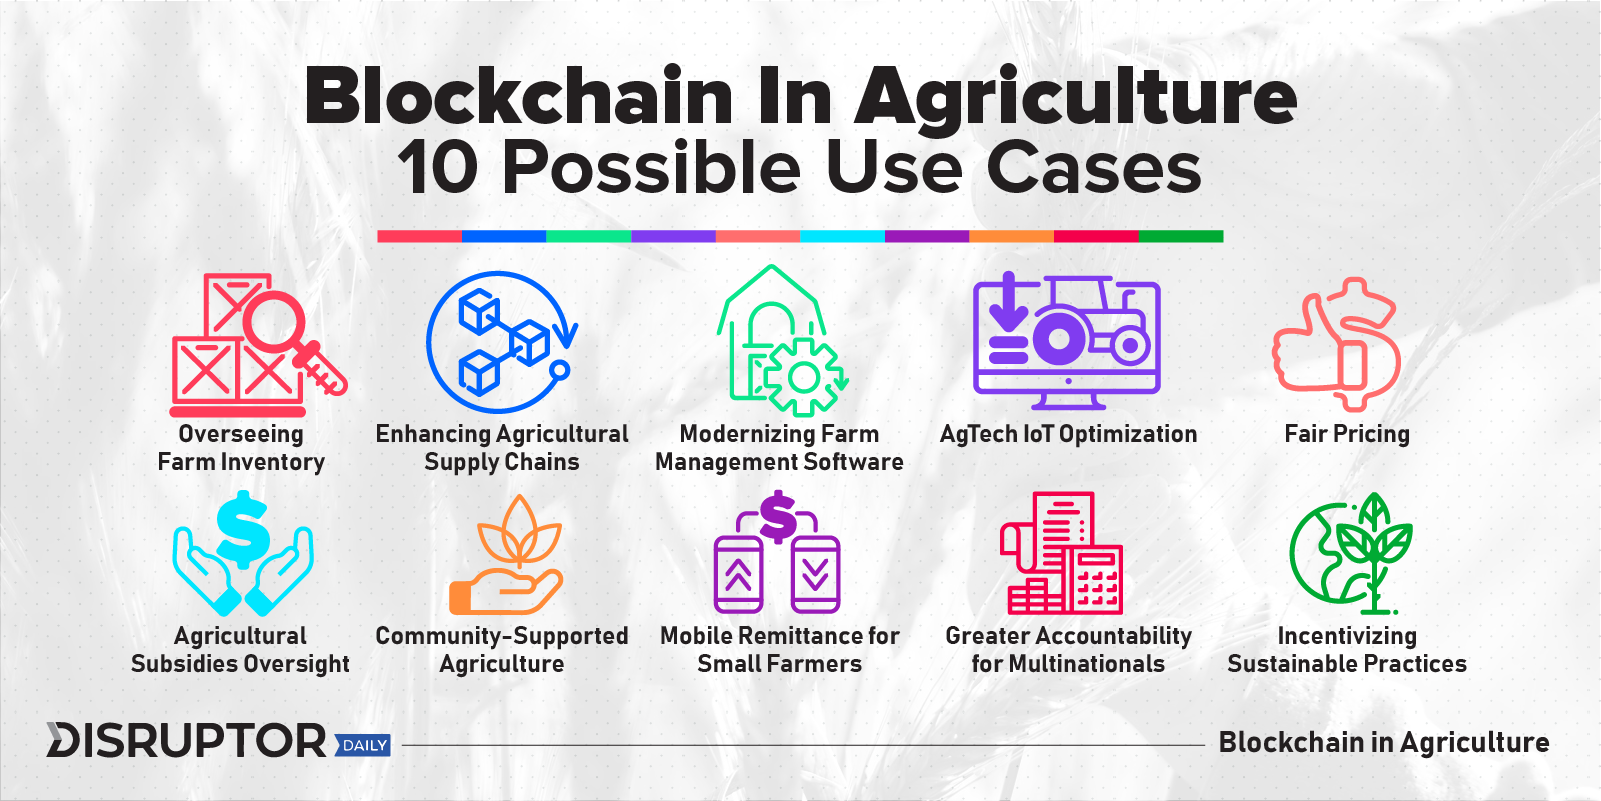 Blockchain In Agriculture: 10 Possible Use Cases - Disruptor Daily